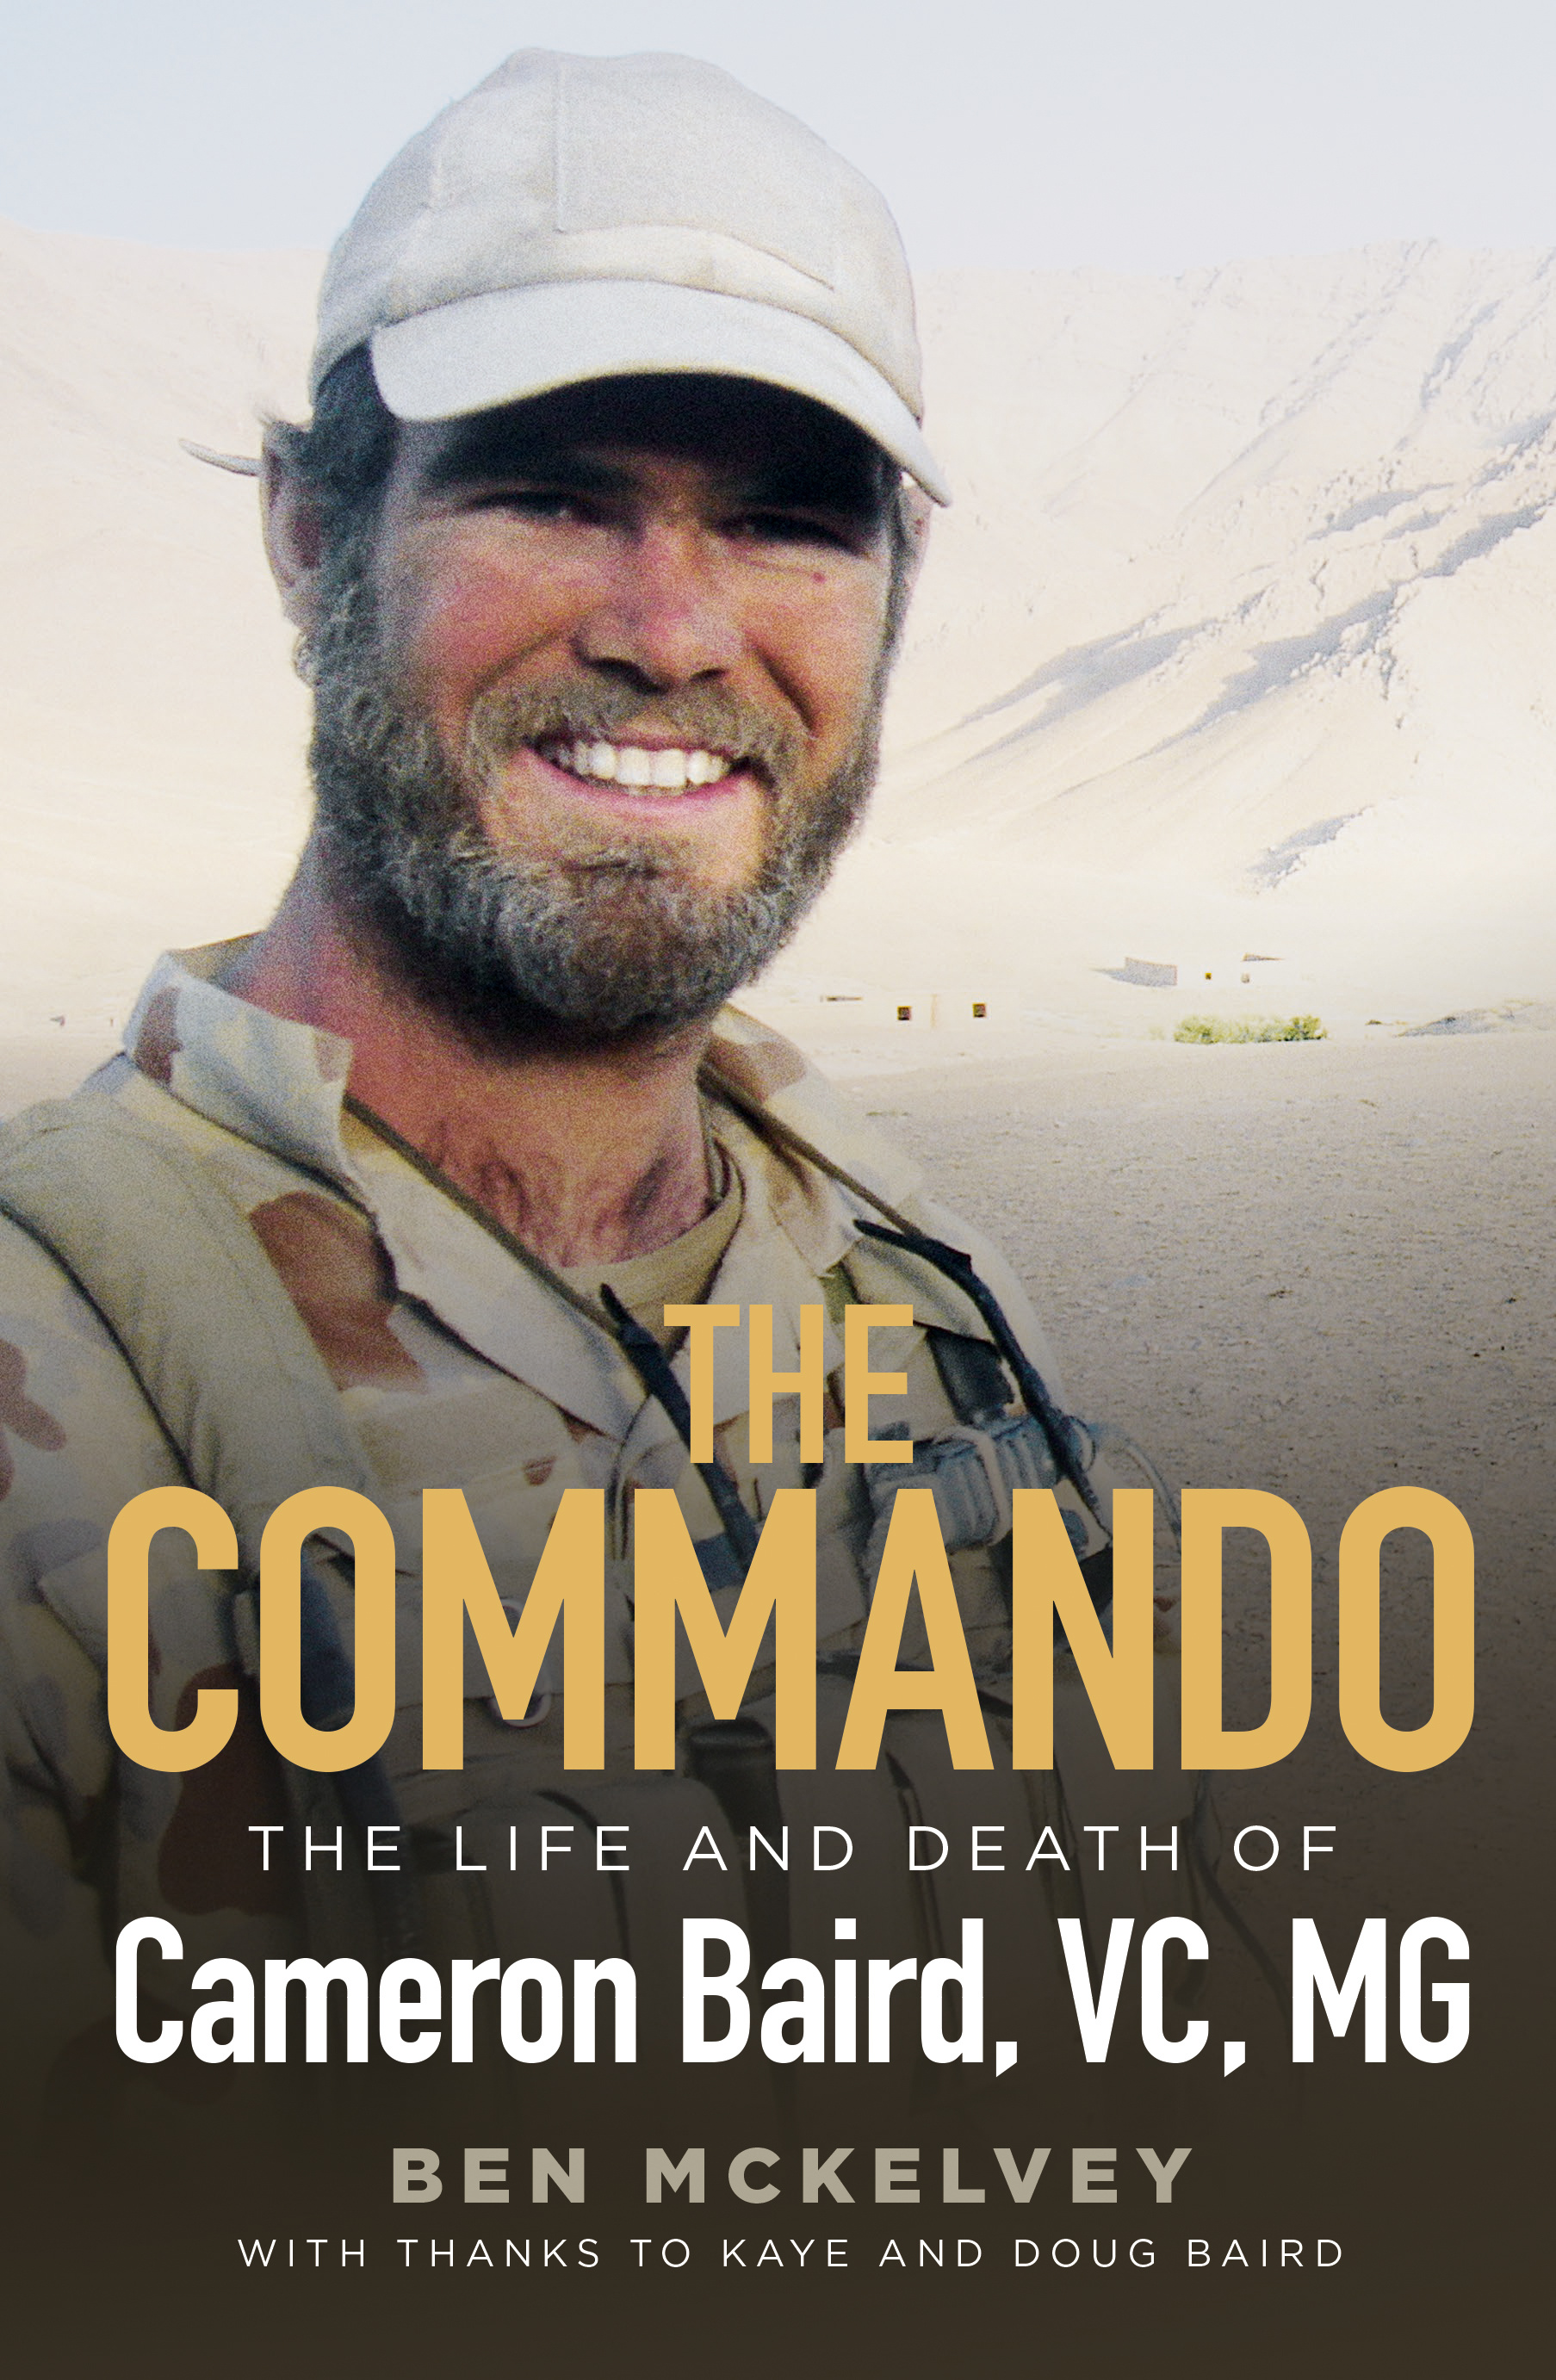 The Commando by Ben Mckelvey